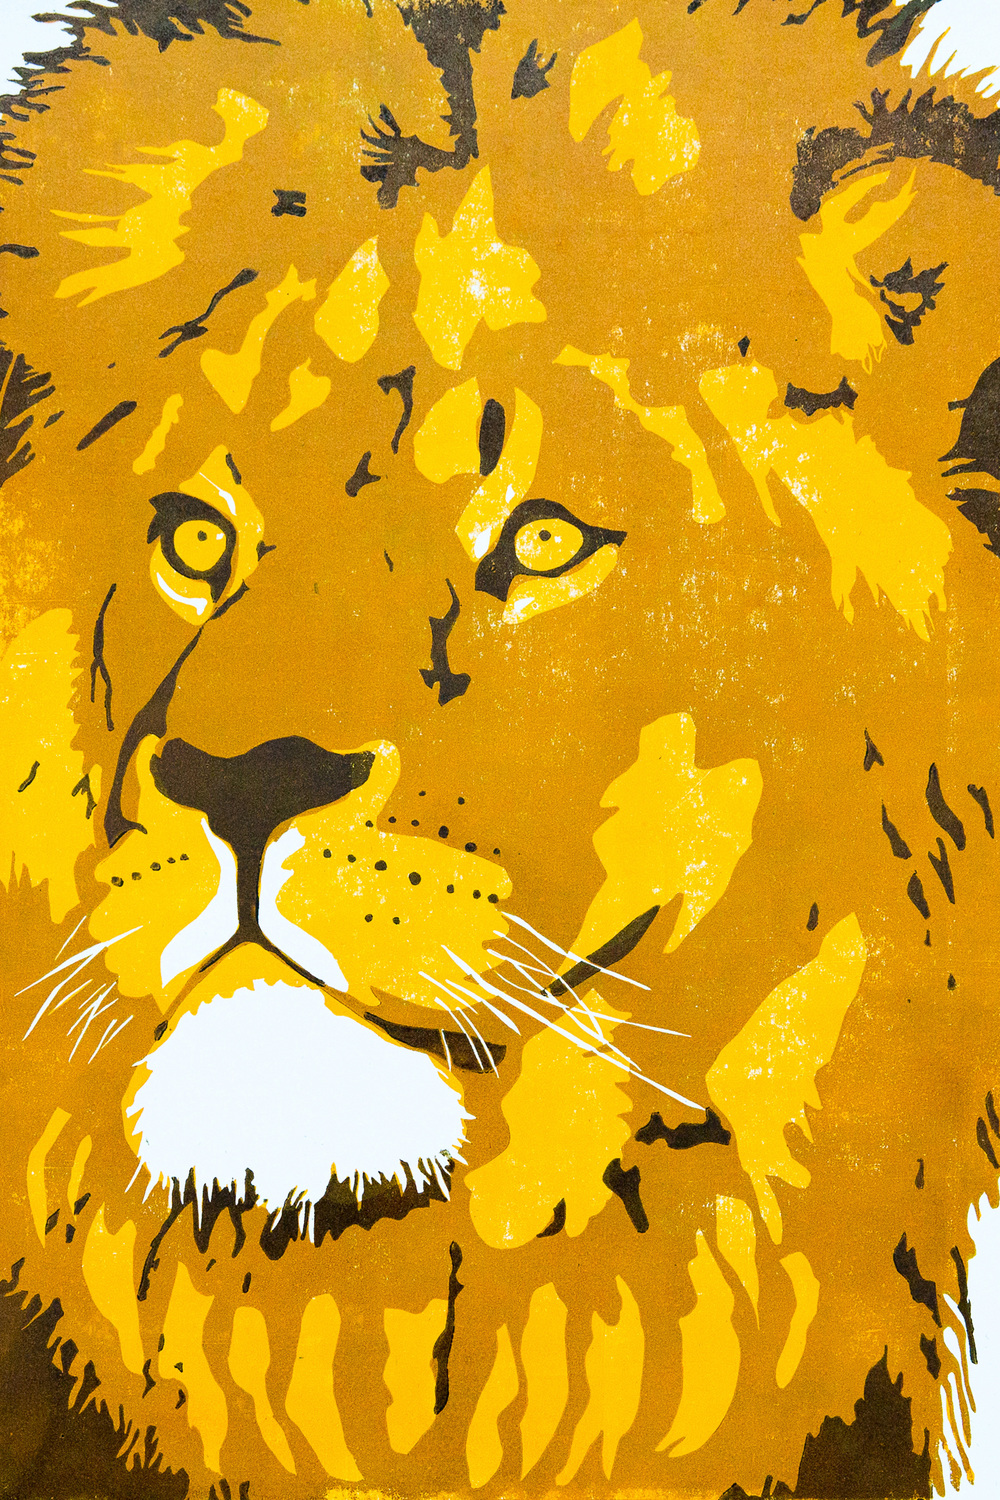 lion_letterpress_print_illustration.jpg